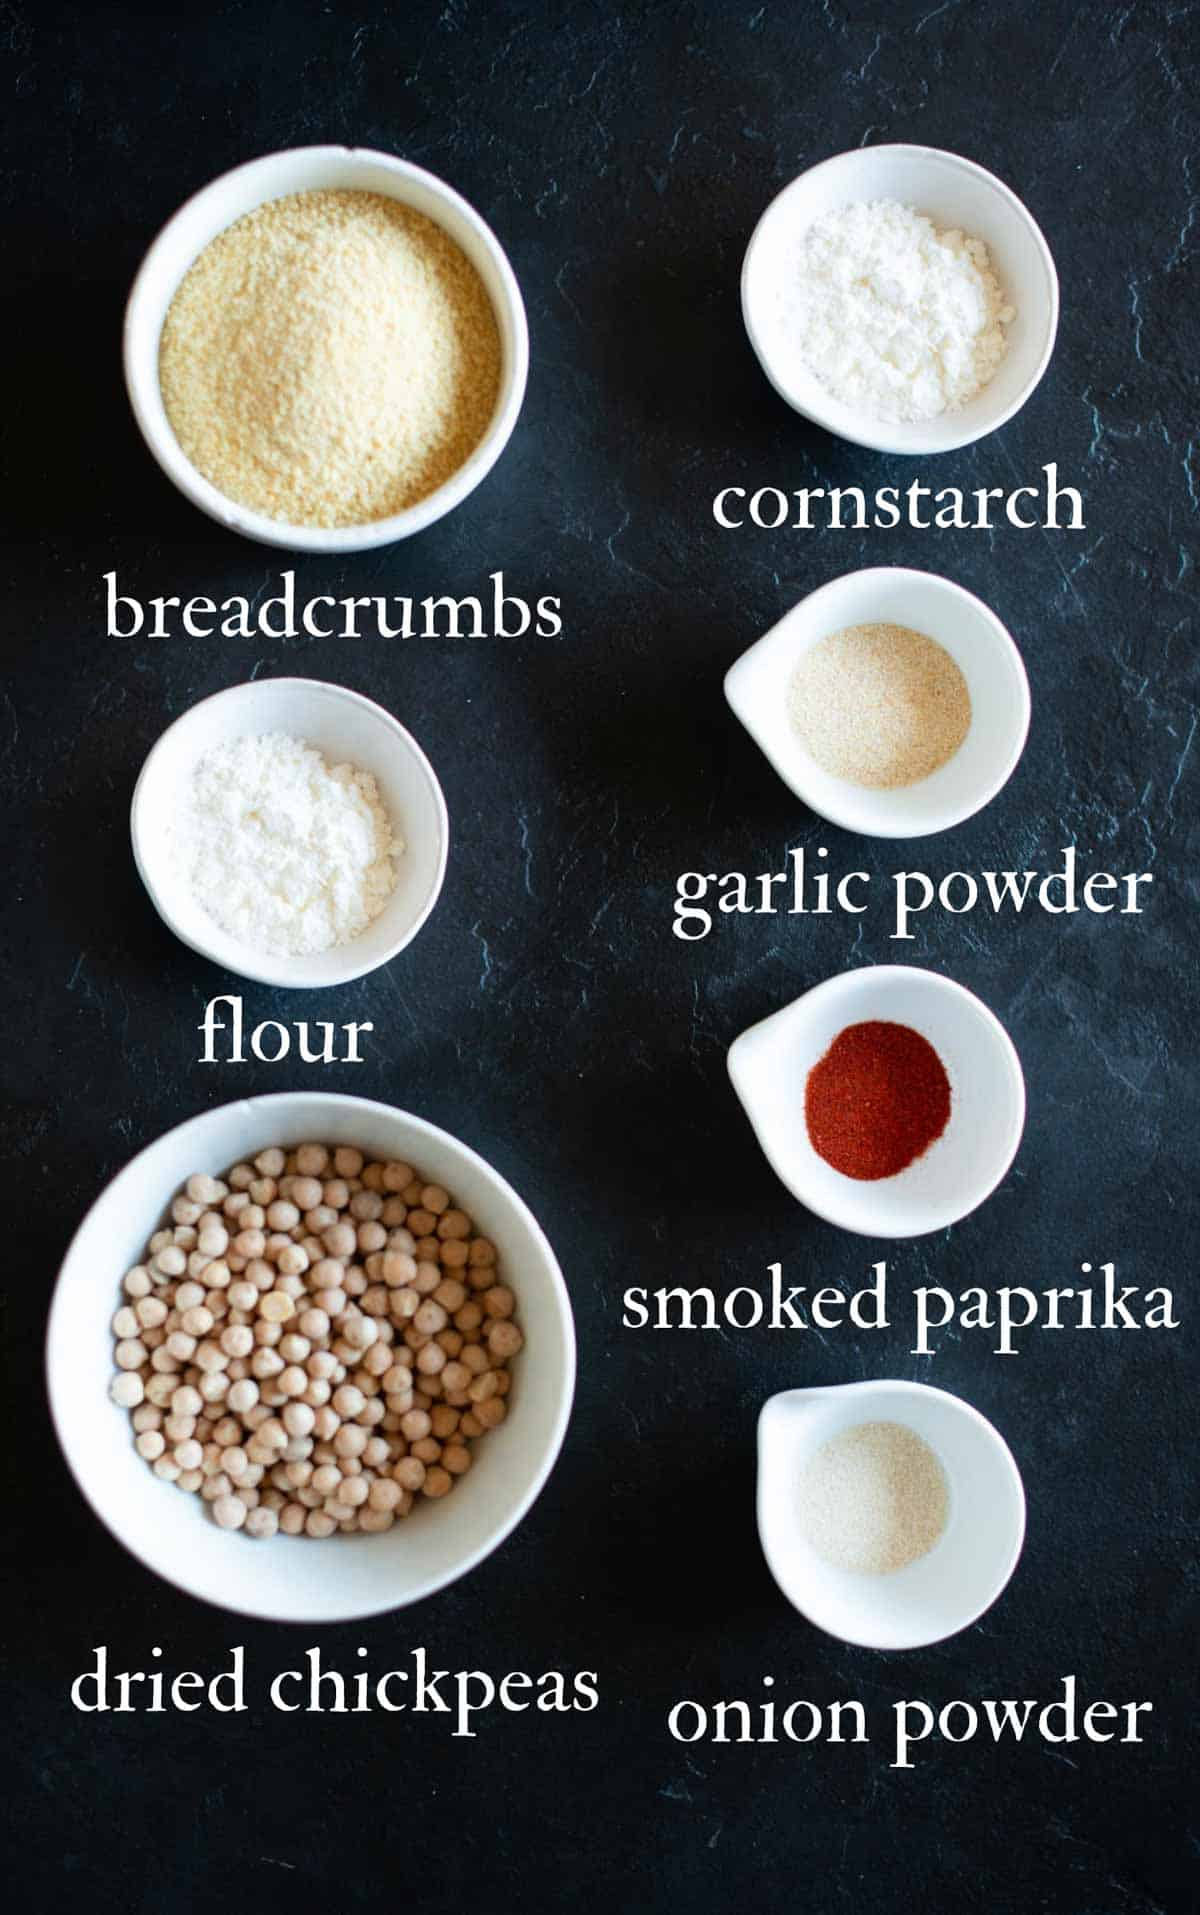 Image of the chickpea cutlets ingredients